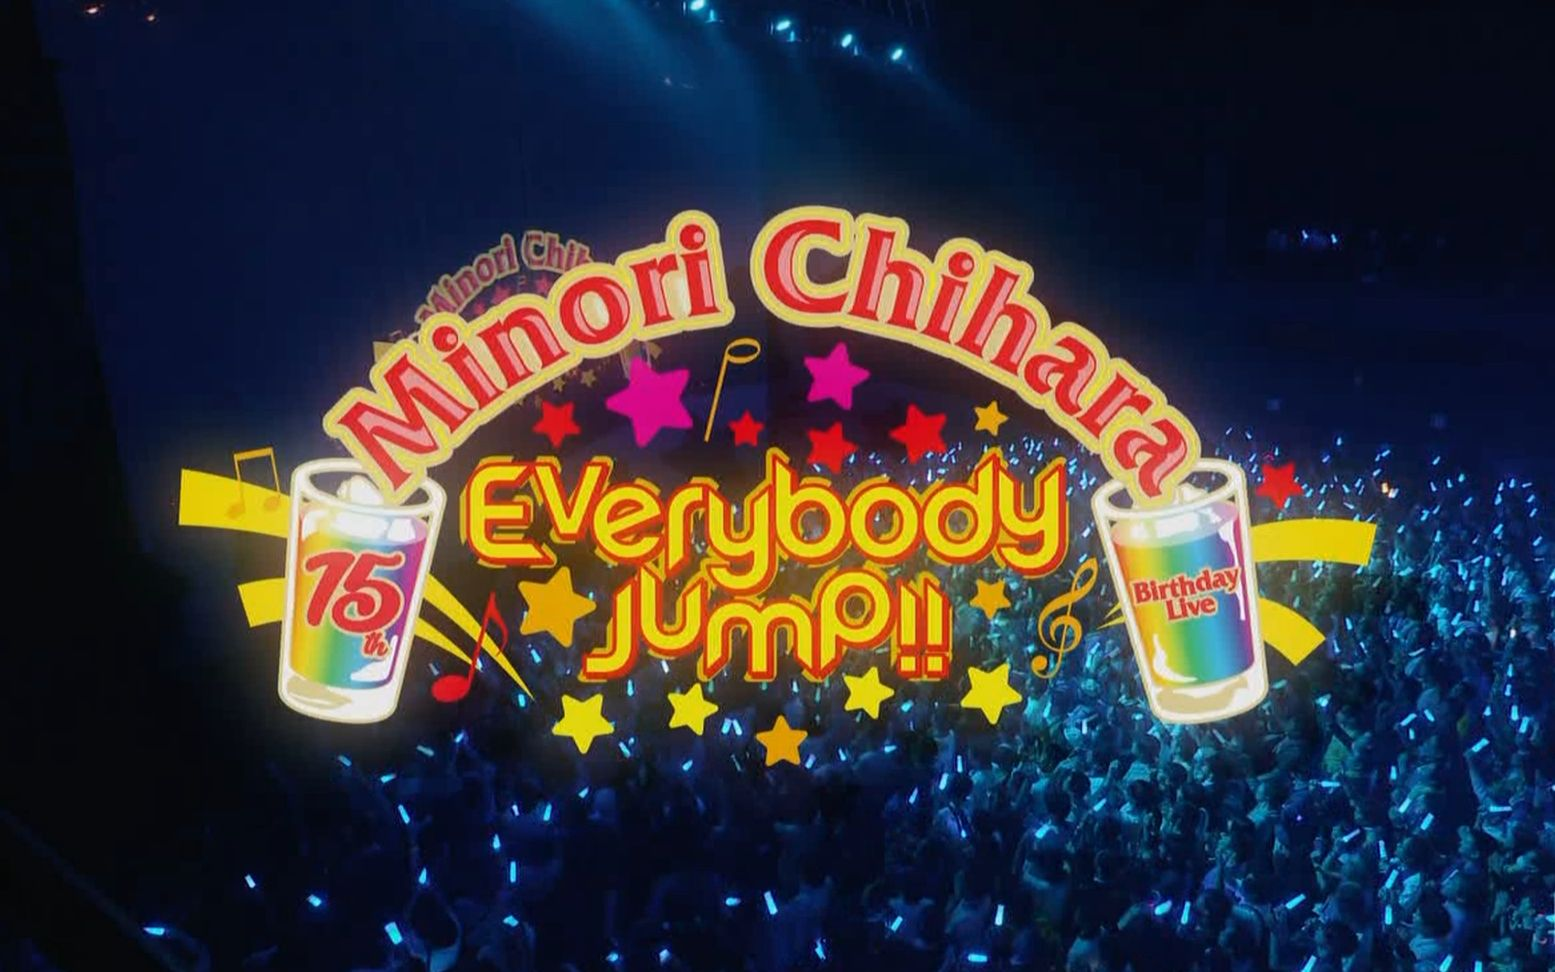 【生肉】茅原实里 15th Anniversary Minori Chihara Birthday Live